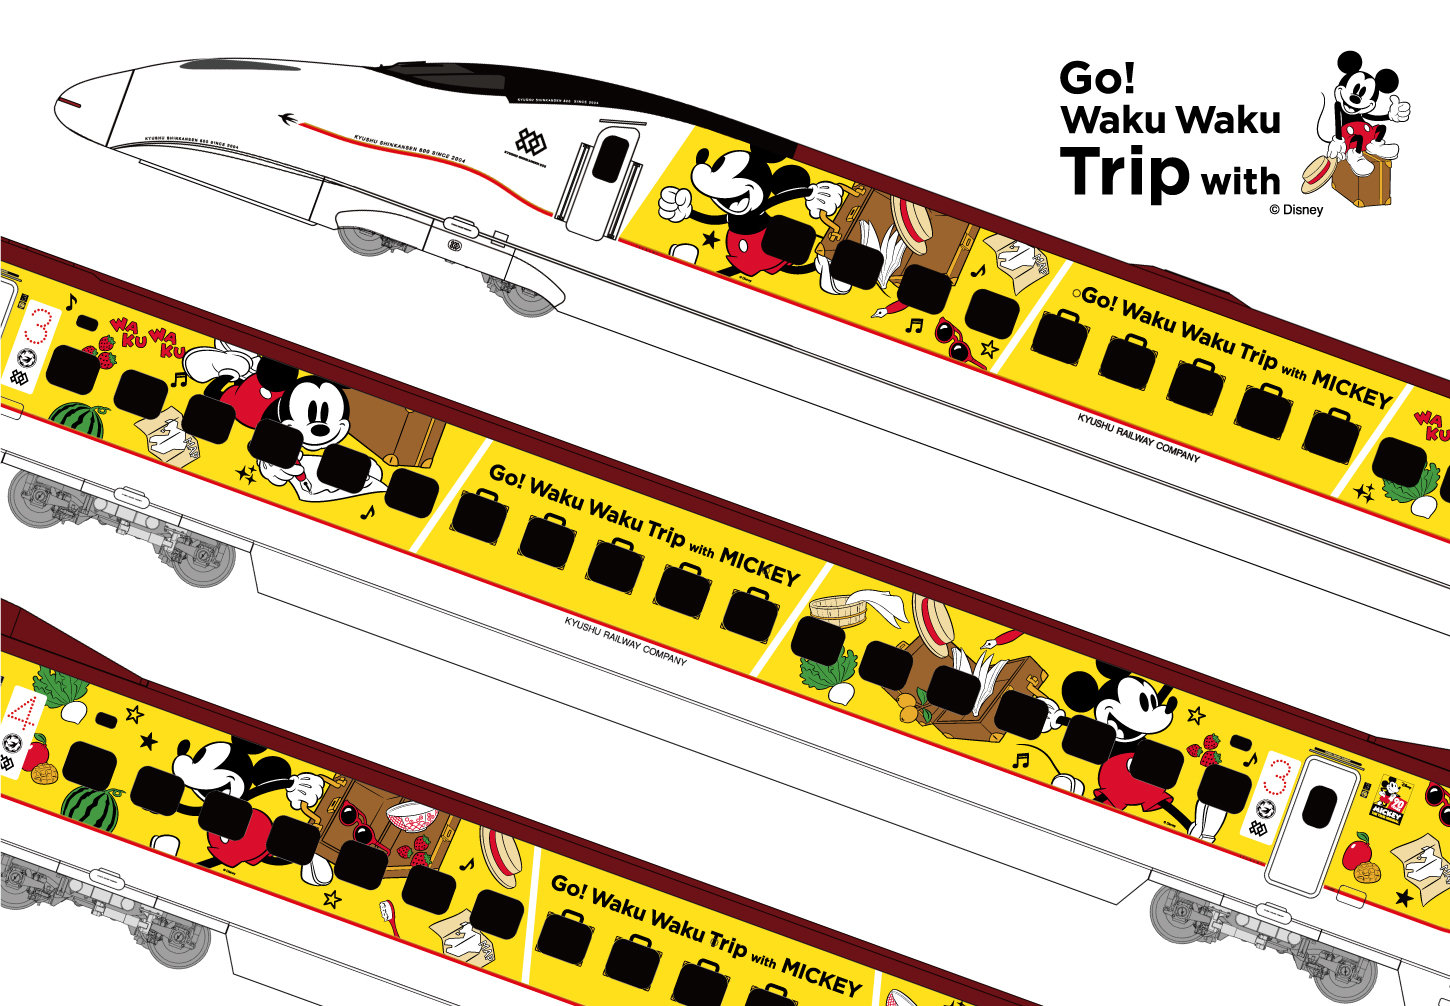 (C)Kyushu Railway Company. All Rights Reserved. (C)Disney